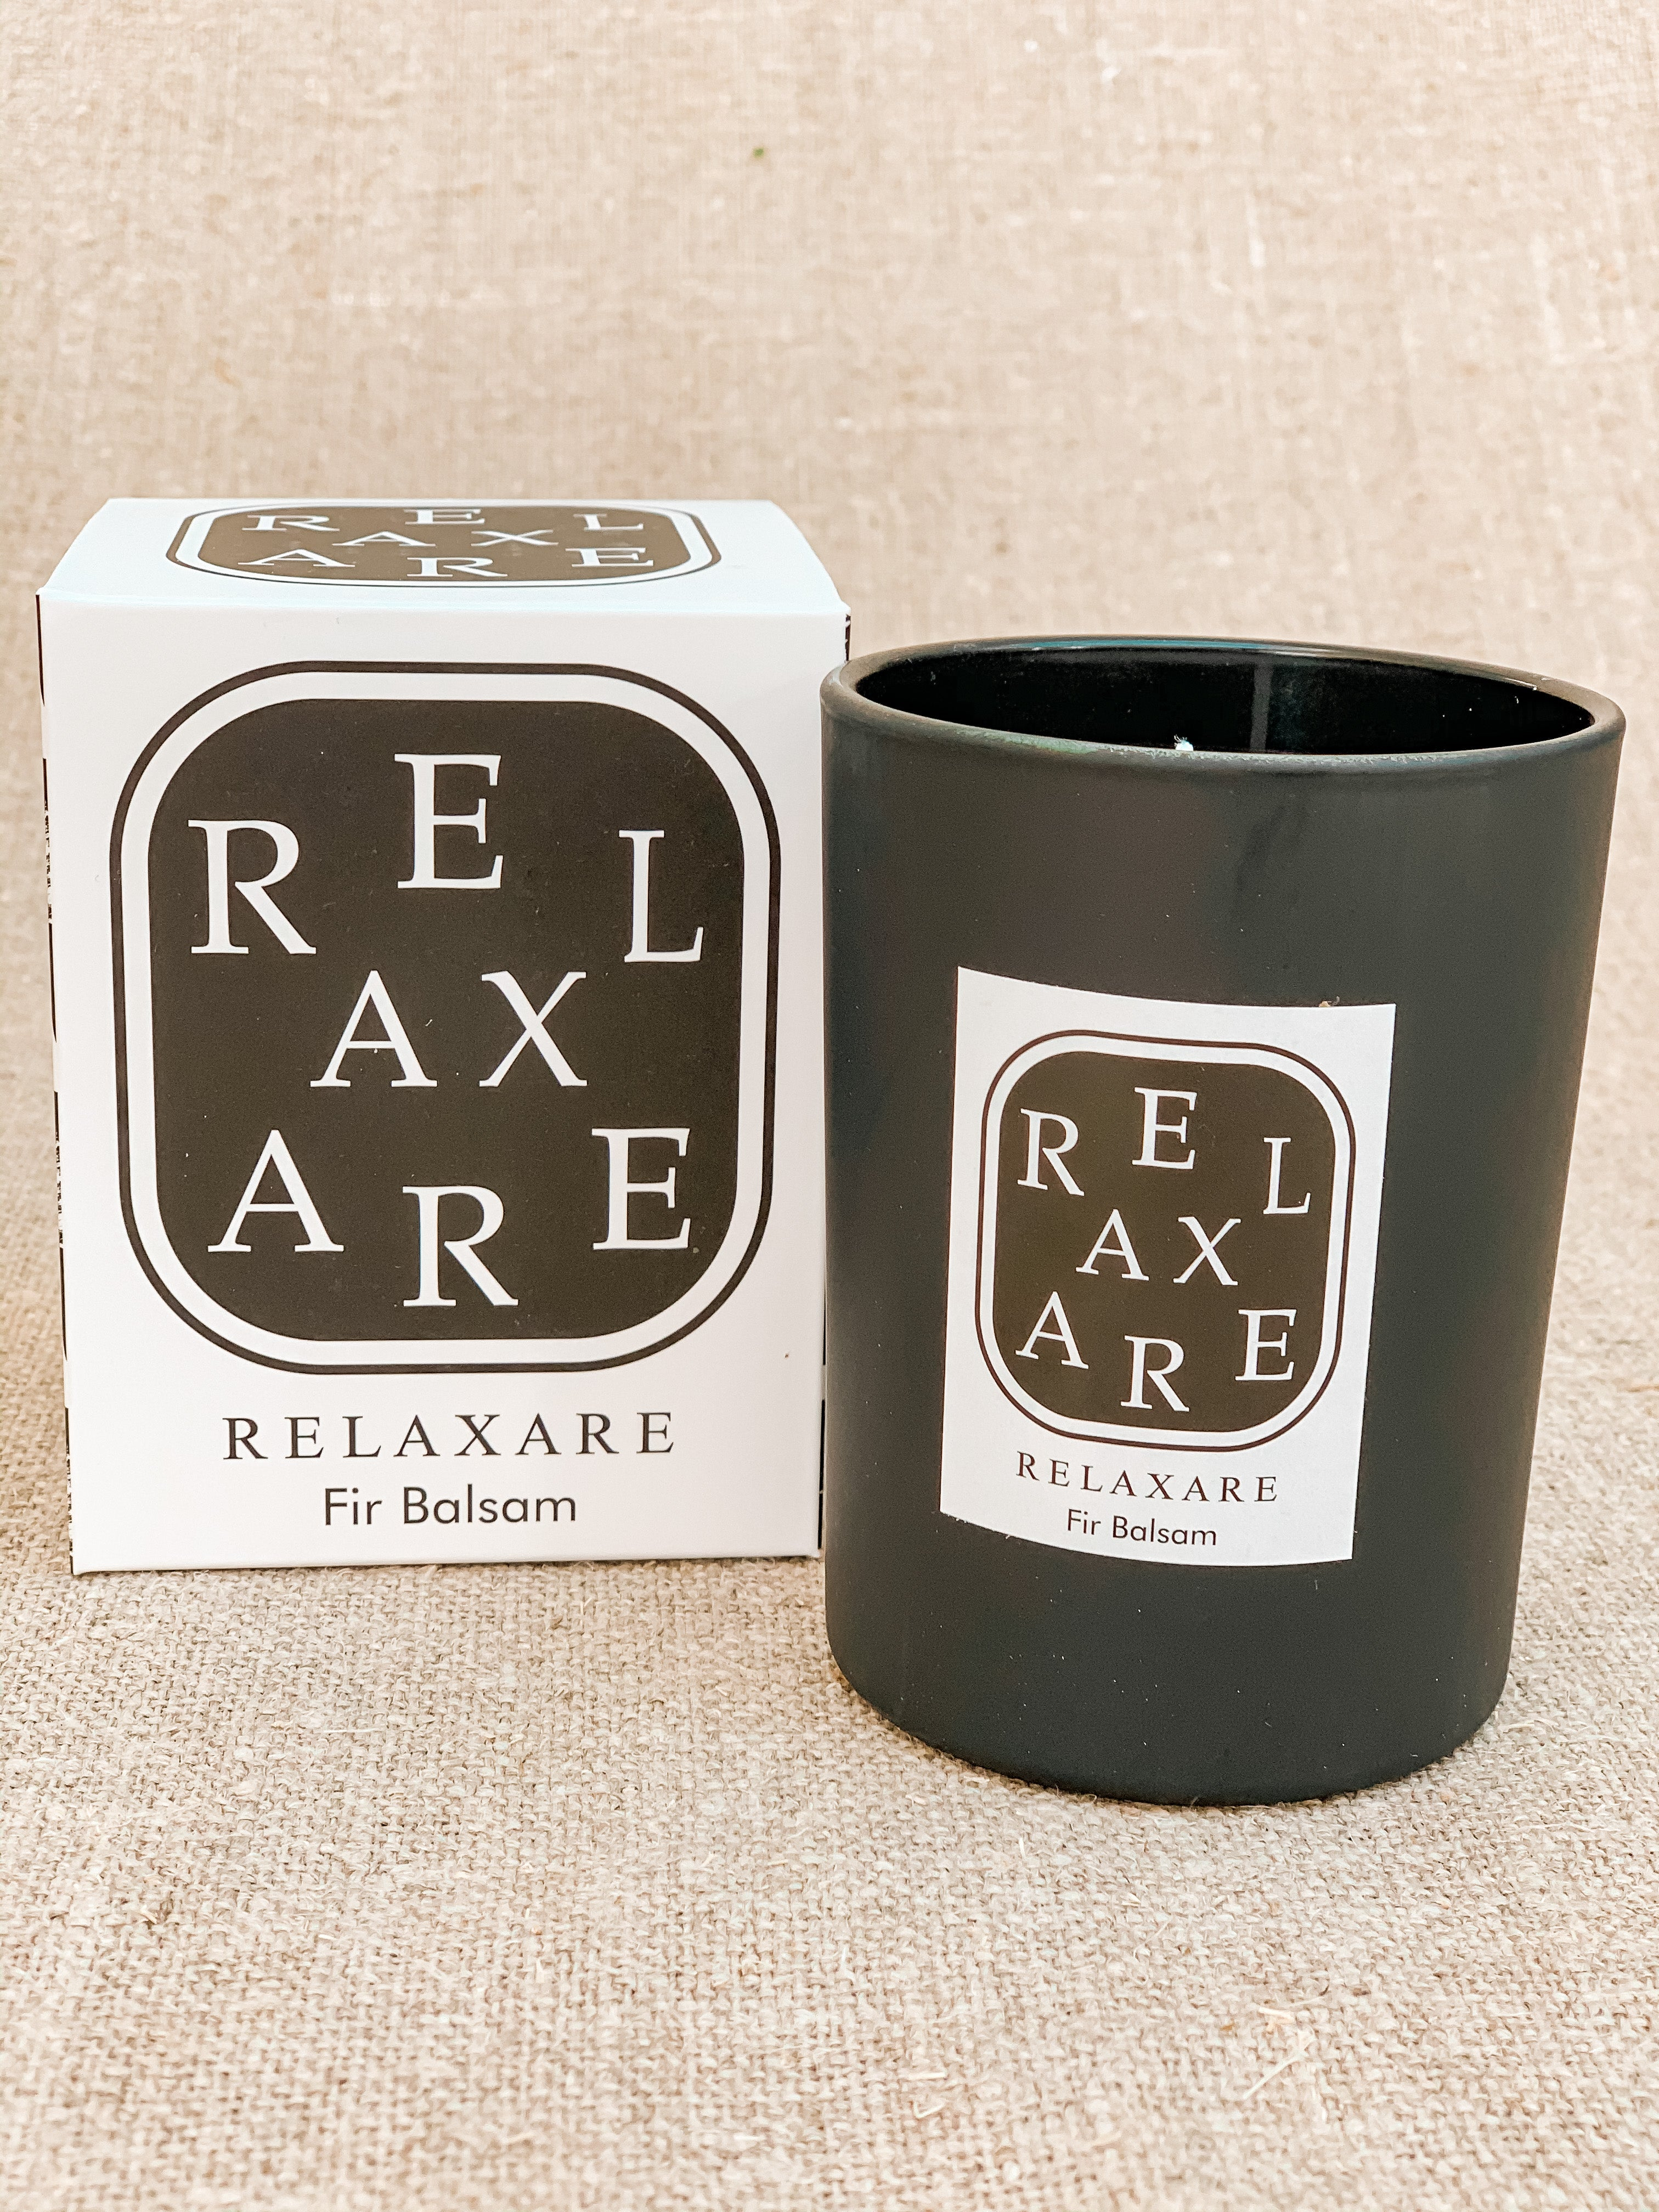 Relaxare Fir Balsam Black Candle